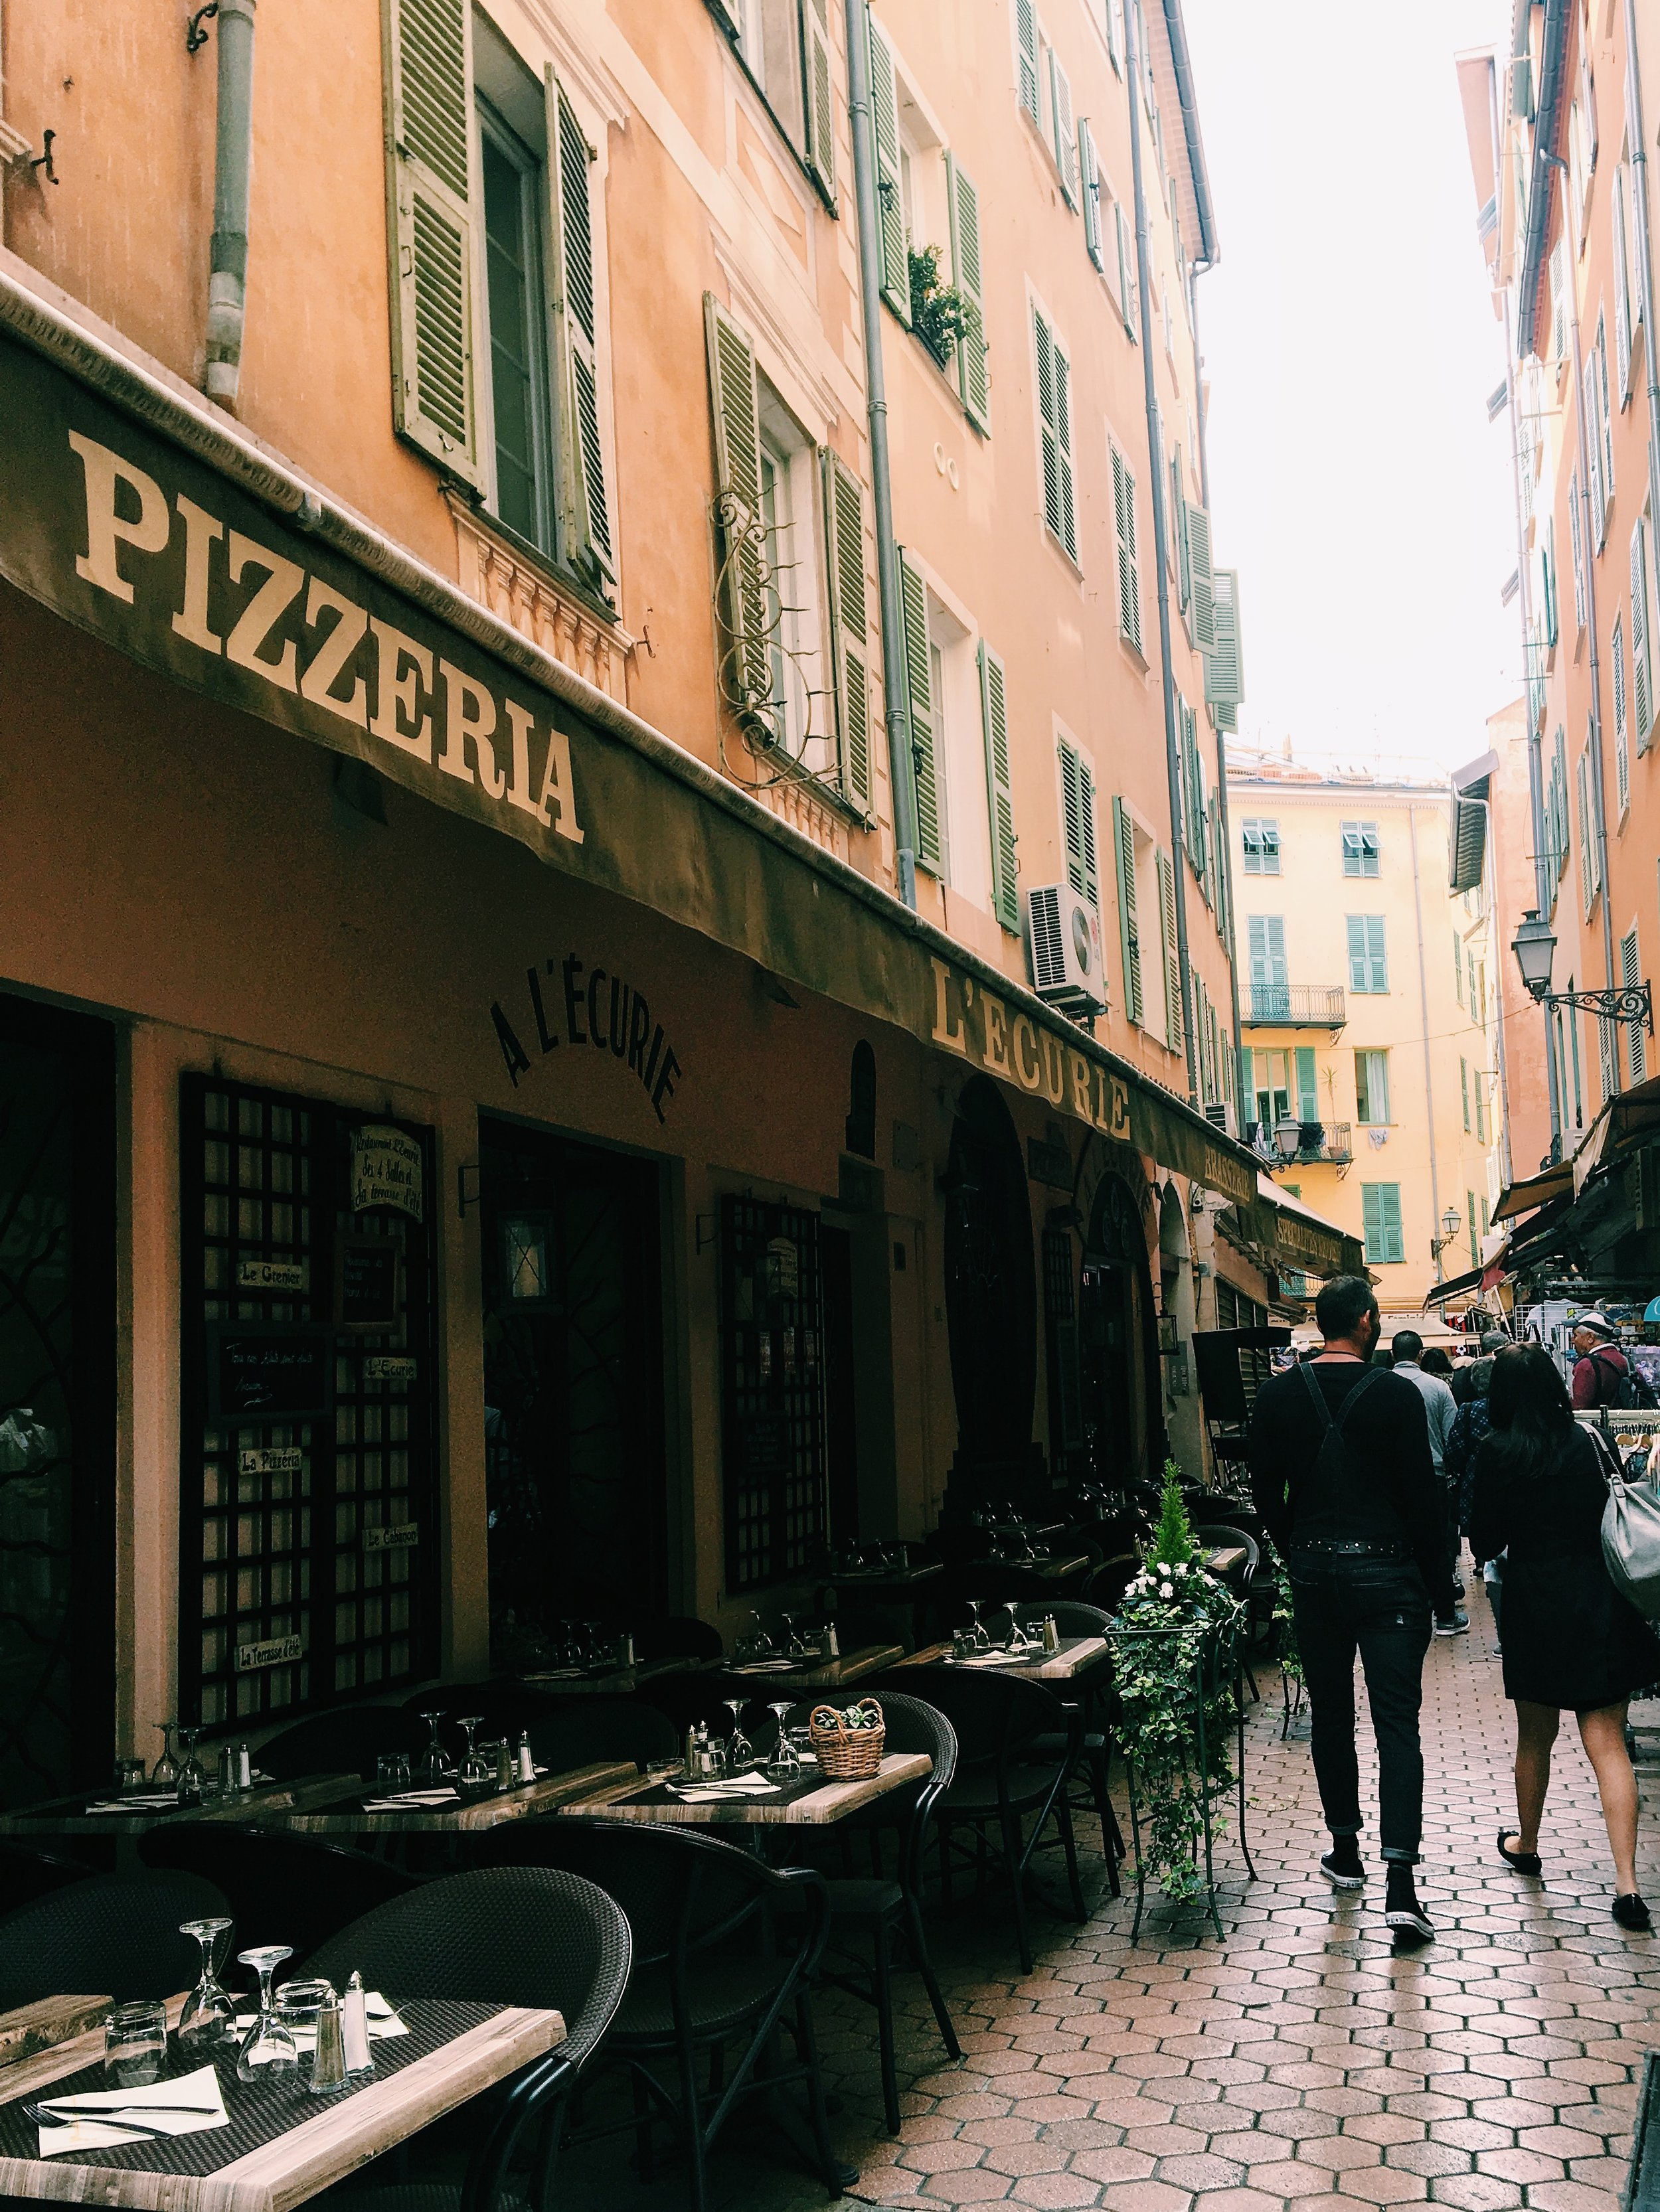 Meandering the streets of  Vieux Nice  (Old Nice),abundant with shops, restaurants, and charming alleyways